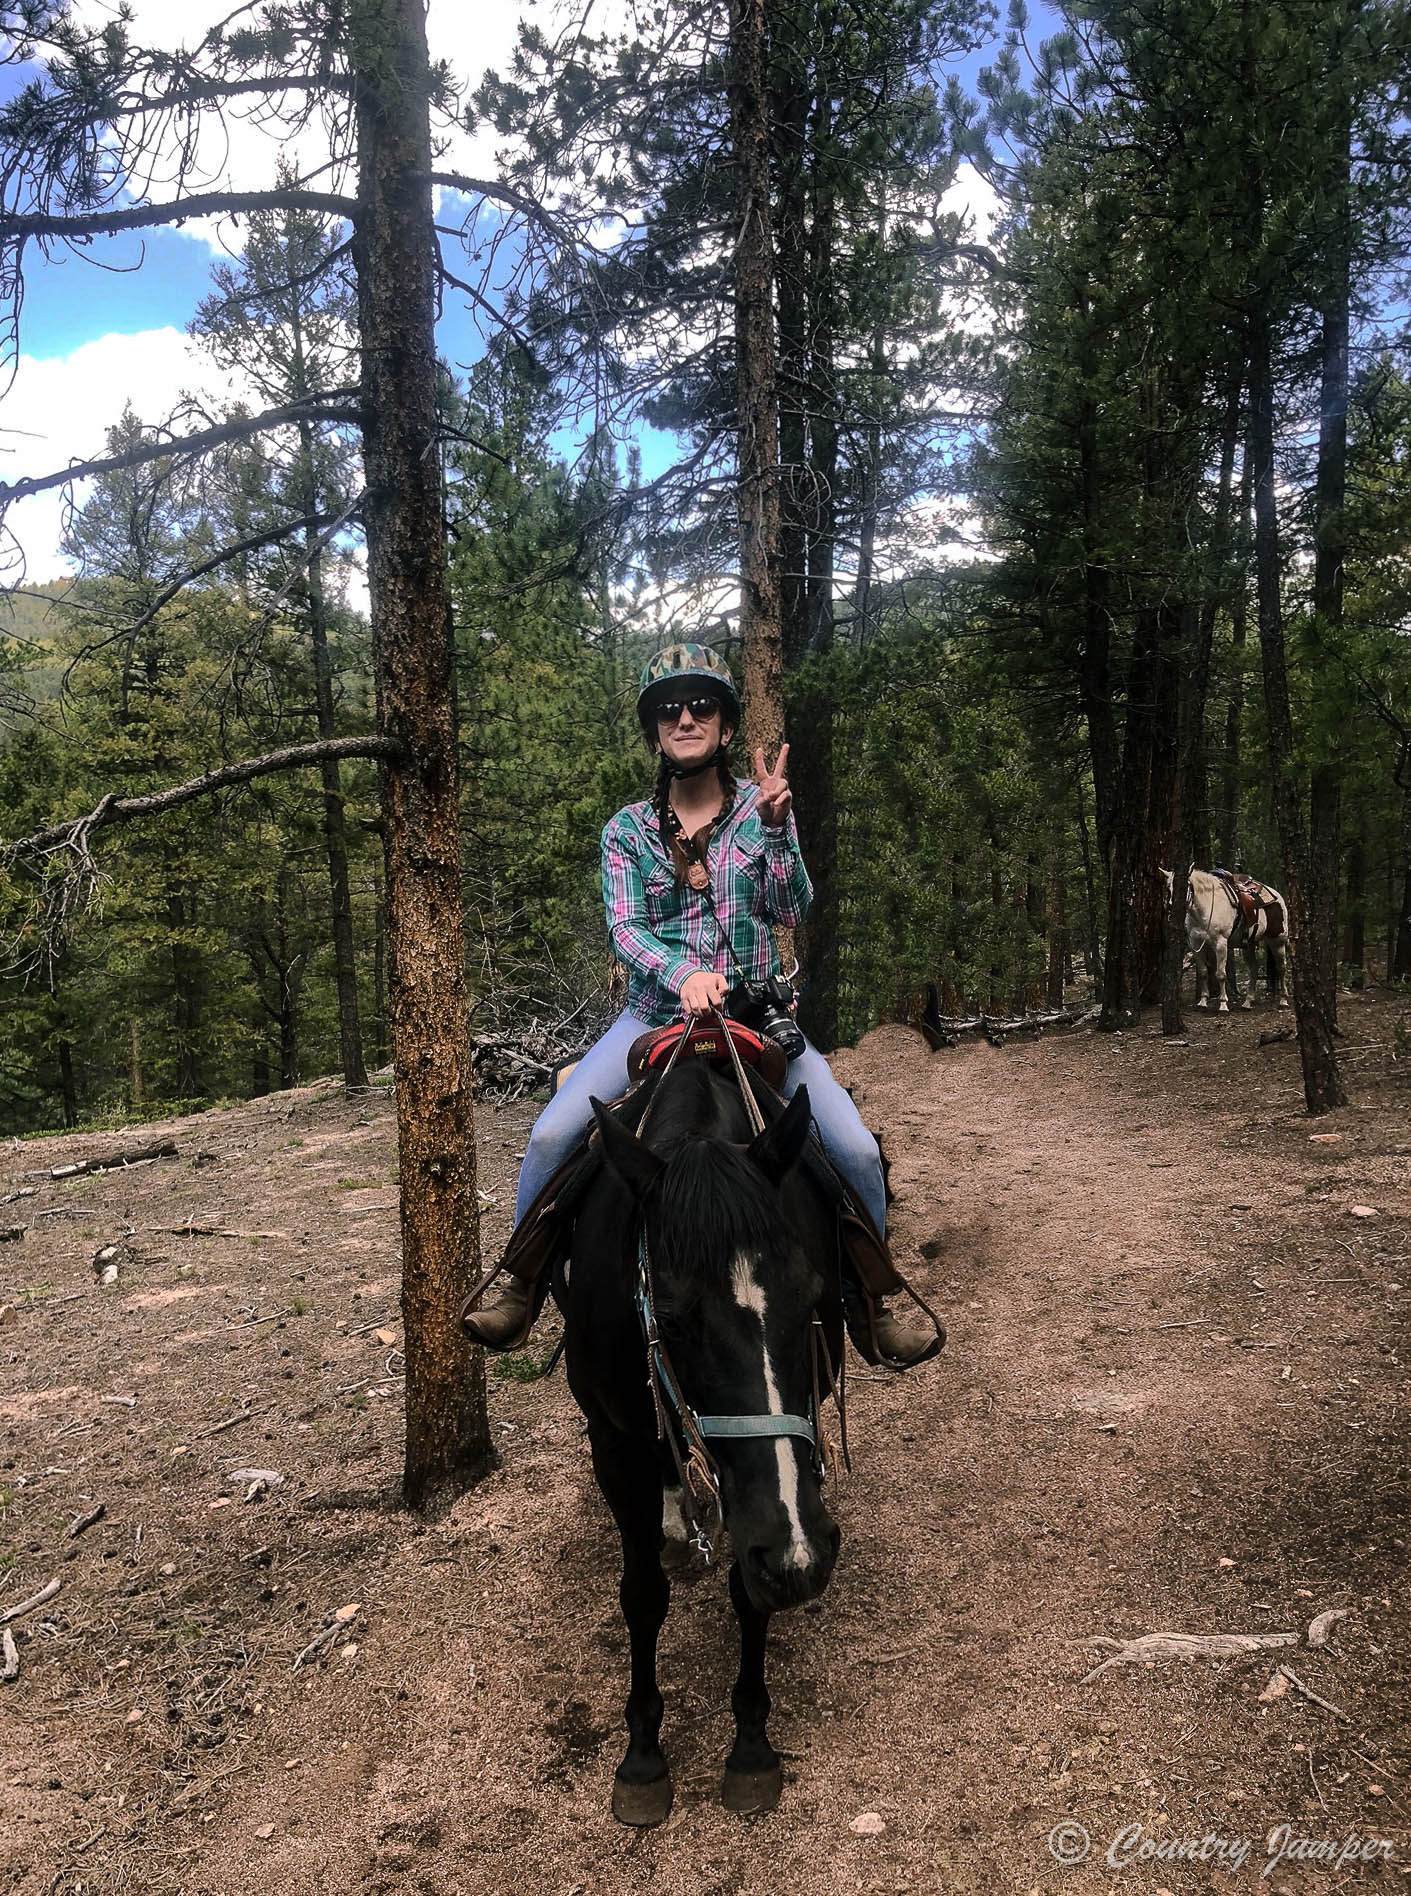 woman with helmet and plaid shirt sitting on black horse in forest